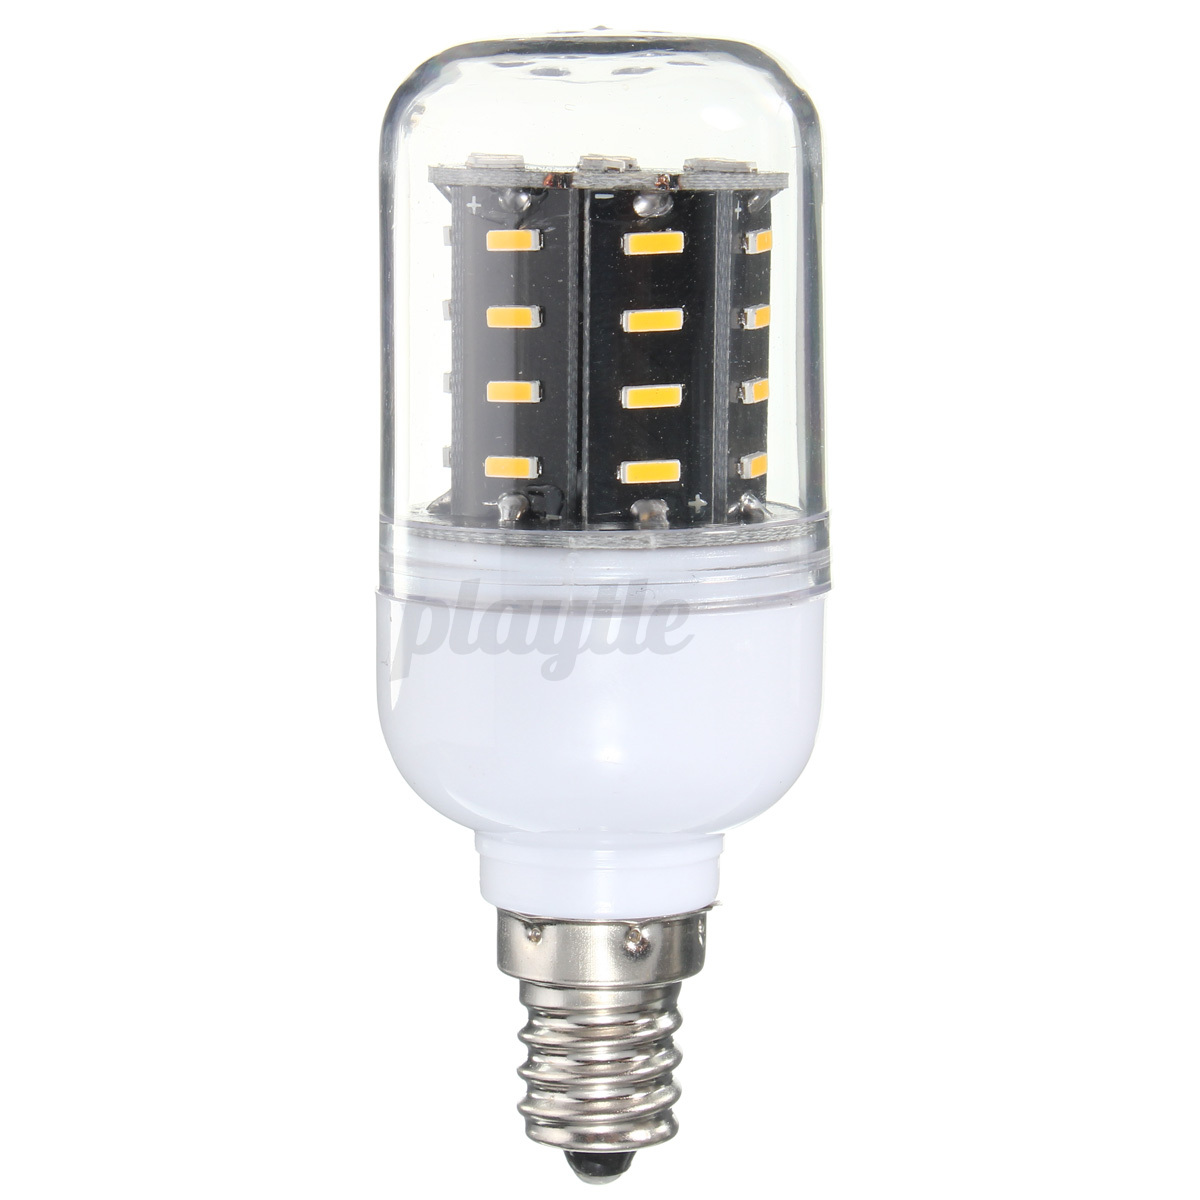 E14 E27 E12 B22 G9 GU10 LED Corn Light 4014 SMD 12/18/25 ...